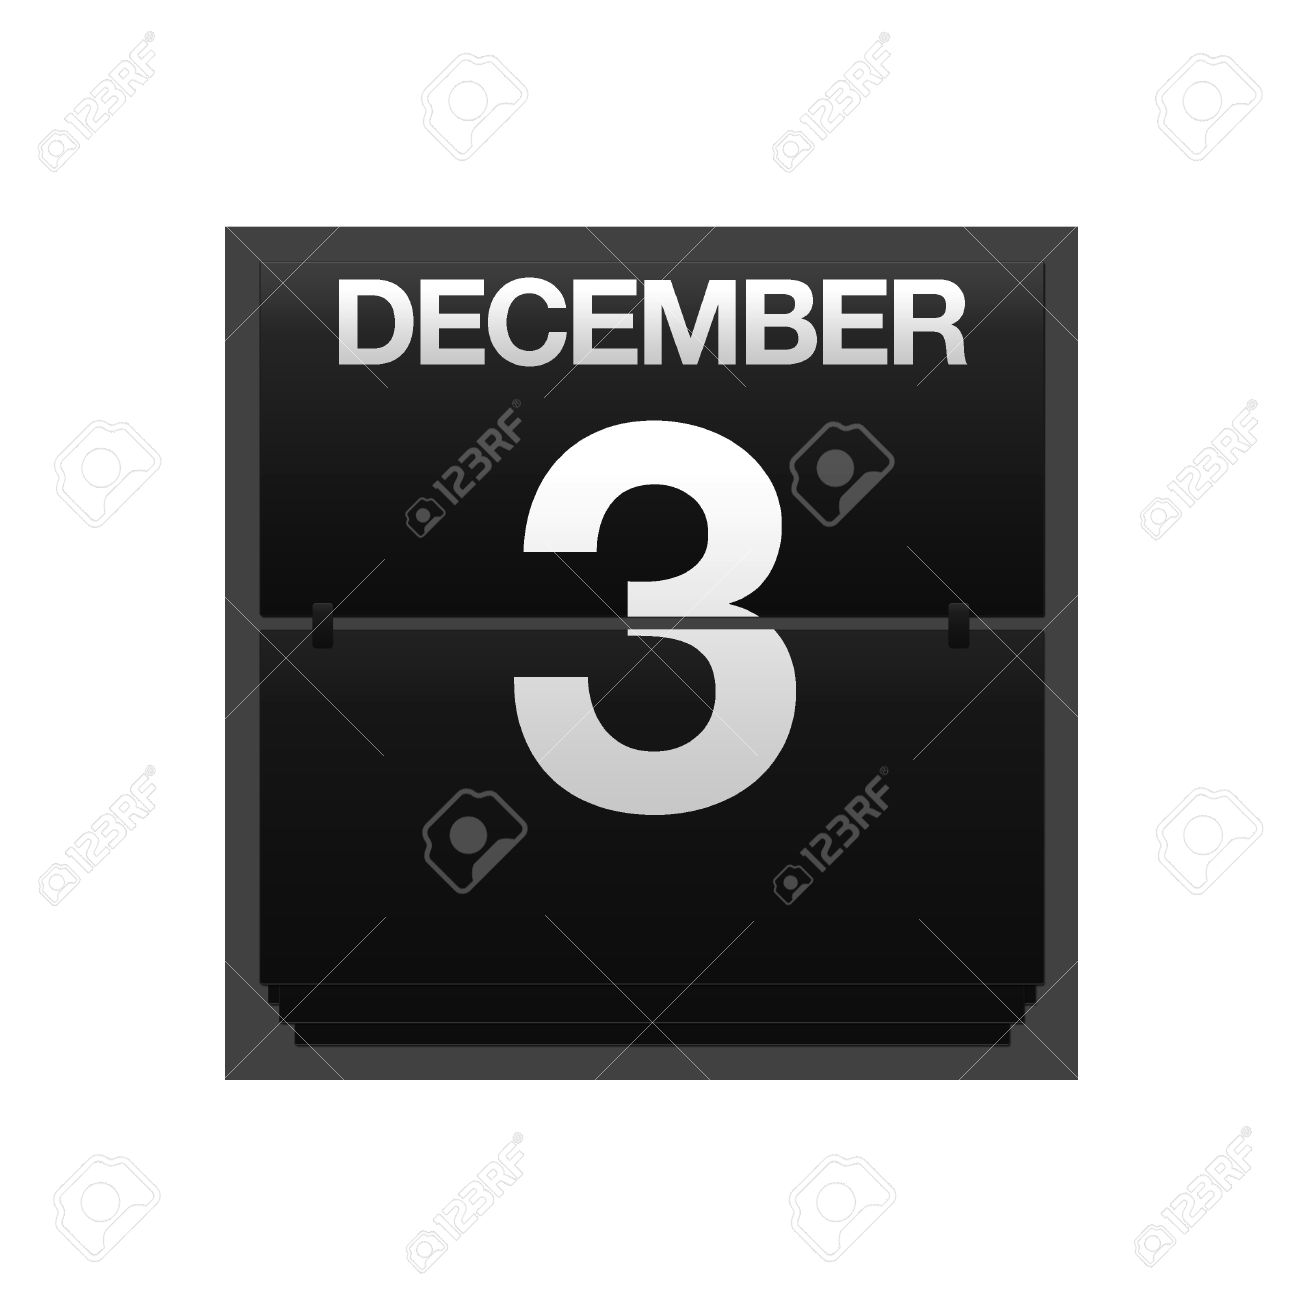 Calendar december 3 clipart vector library library Illustration With A Counter Calendar December 3 Stock Photo ... vector library library